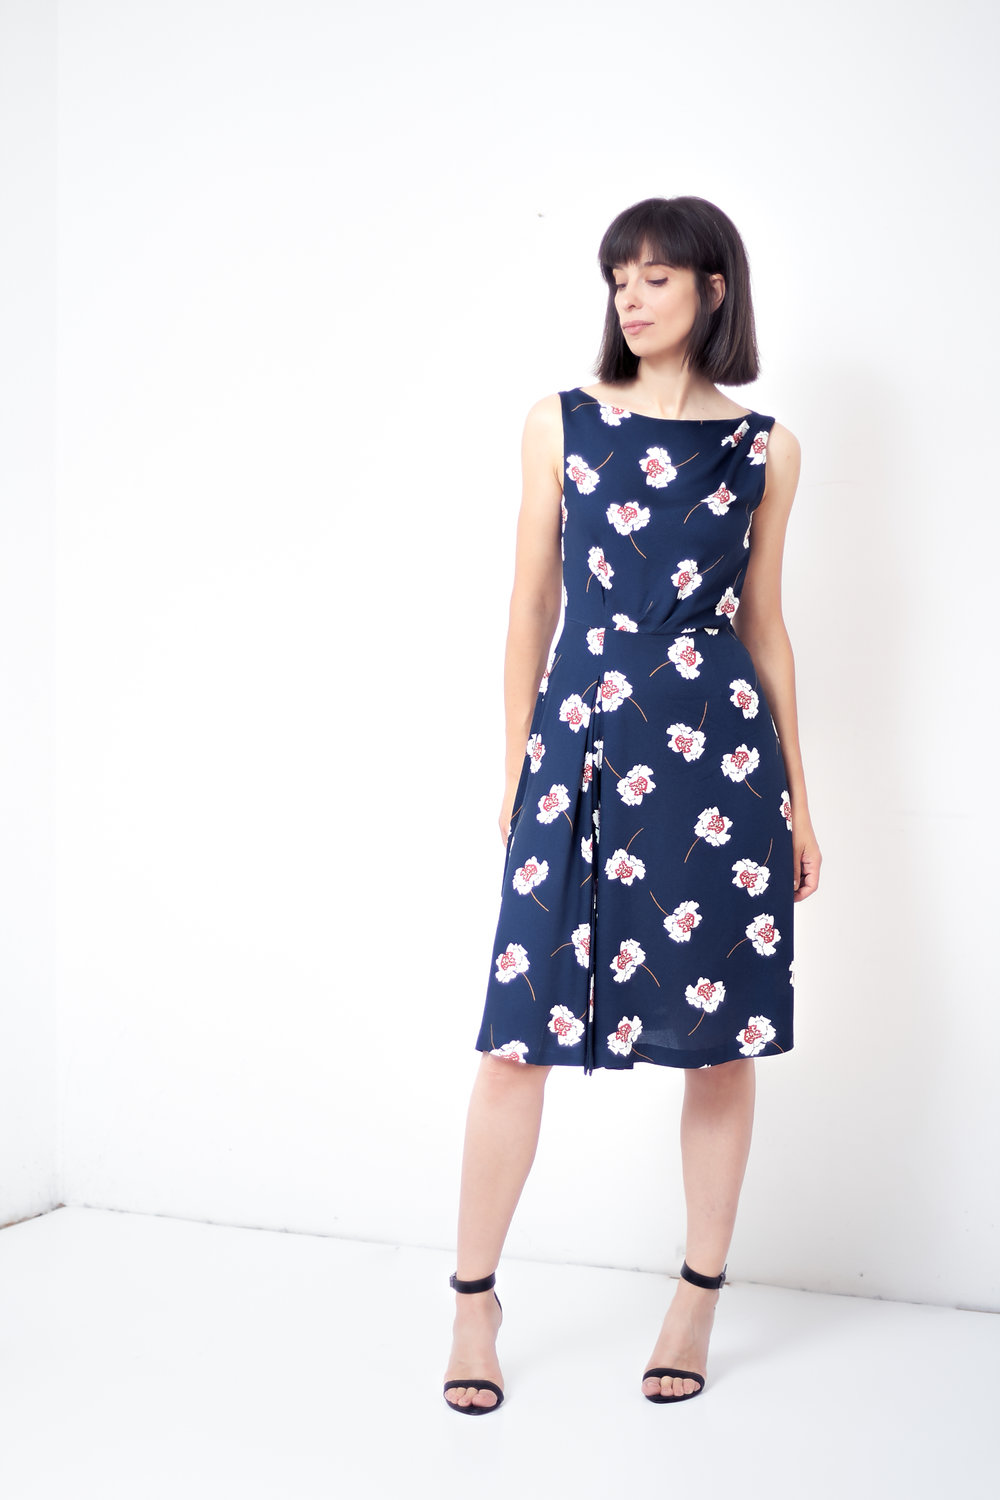 DIY Burda Dress